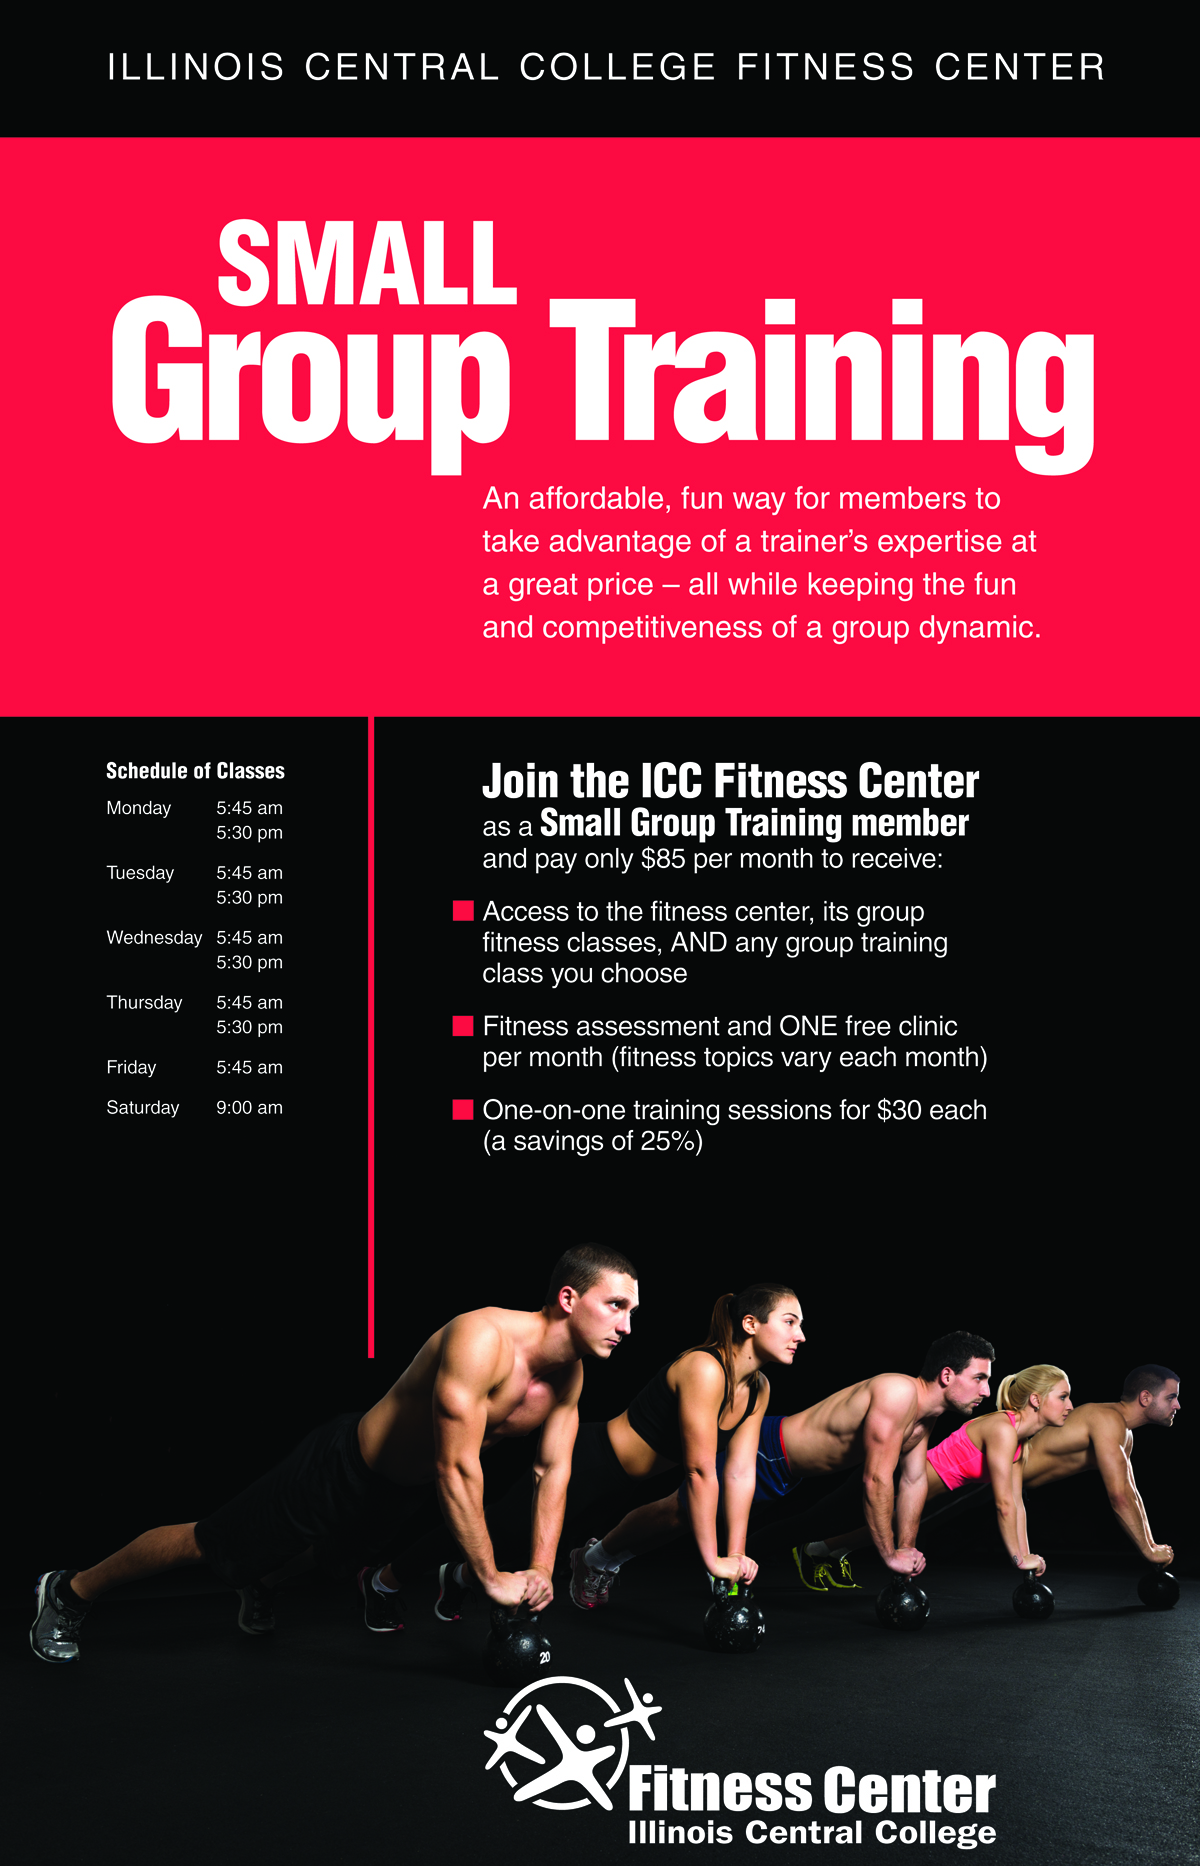 Fitness center around campus a fitness assessment one free clinic per month fitness topics vary each month and a 25 discount for one on one training sessions 30 each 1betcityfo Images